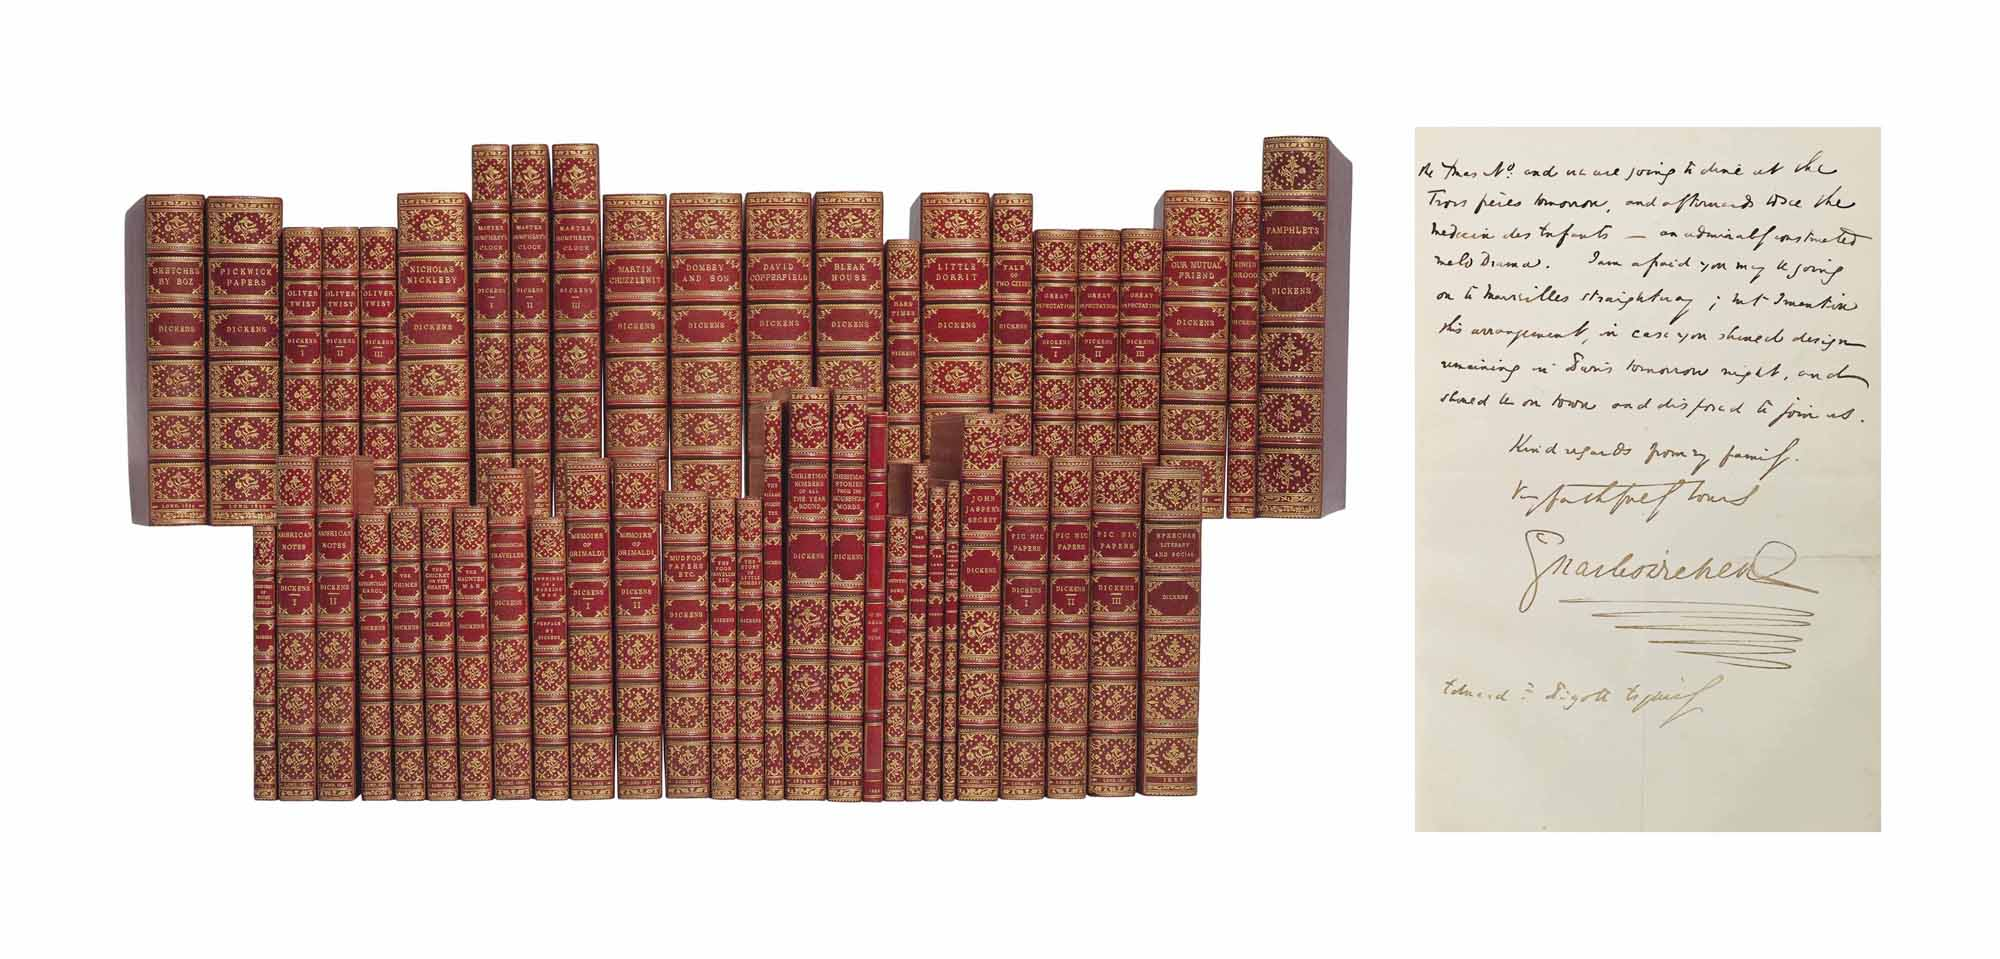 DICKENS, Charles (1812-70) – A COMPLETE SET OF MAJOR AND AN ALMOST COMPLETE SET OF MINOR WORKS, MOST IN FIRST EDITION, THE 49 VOLUMES UNIFORMLY BOUND IN GILT-TOOLED RED MOROCCO BY WALLIS.